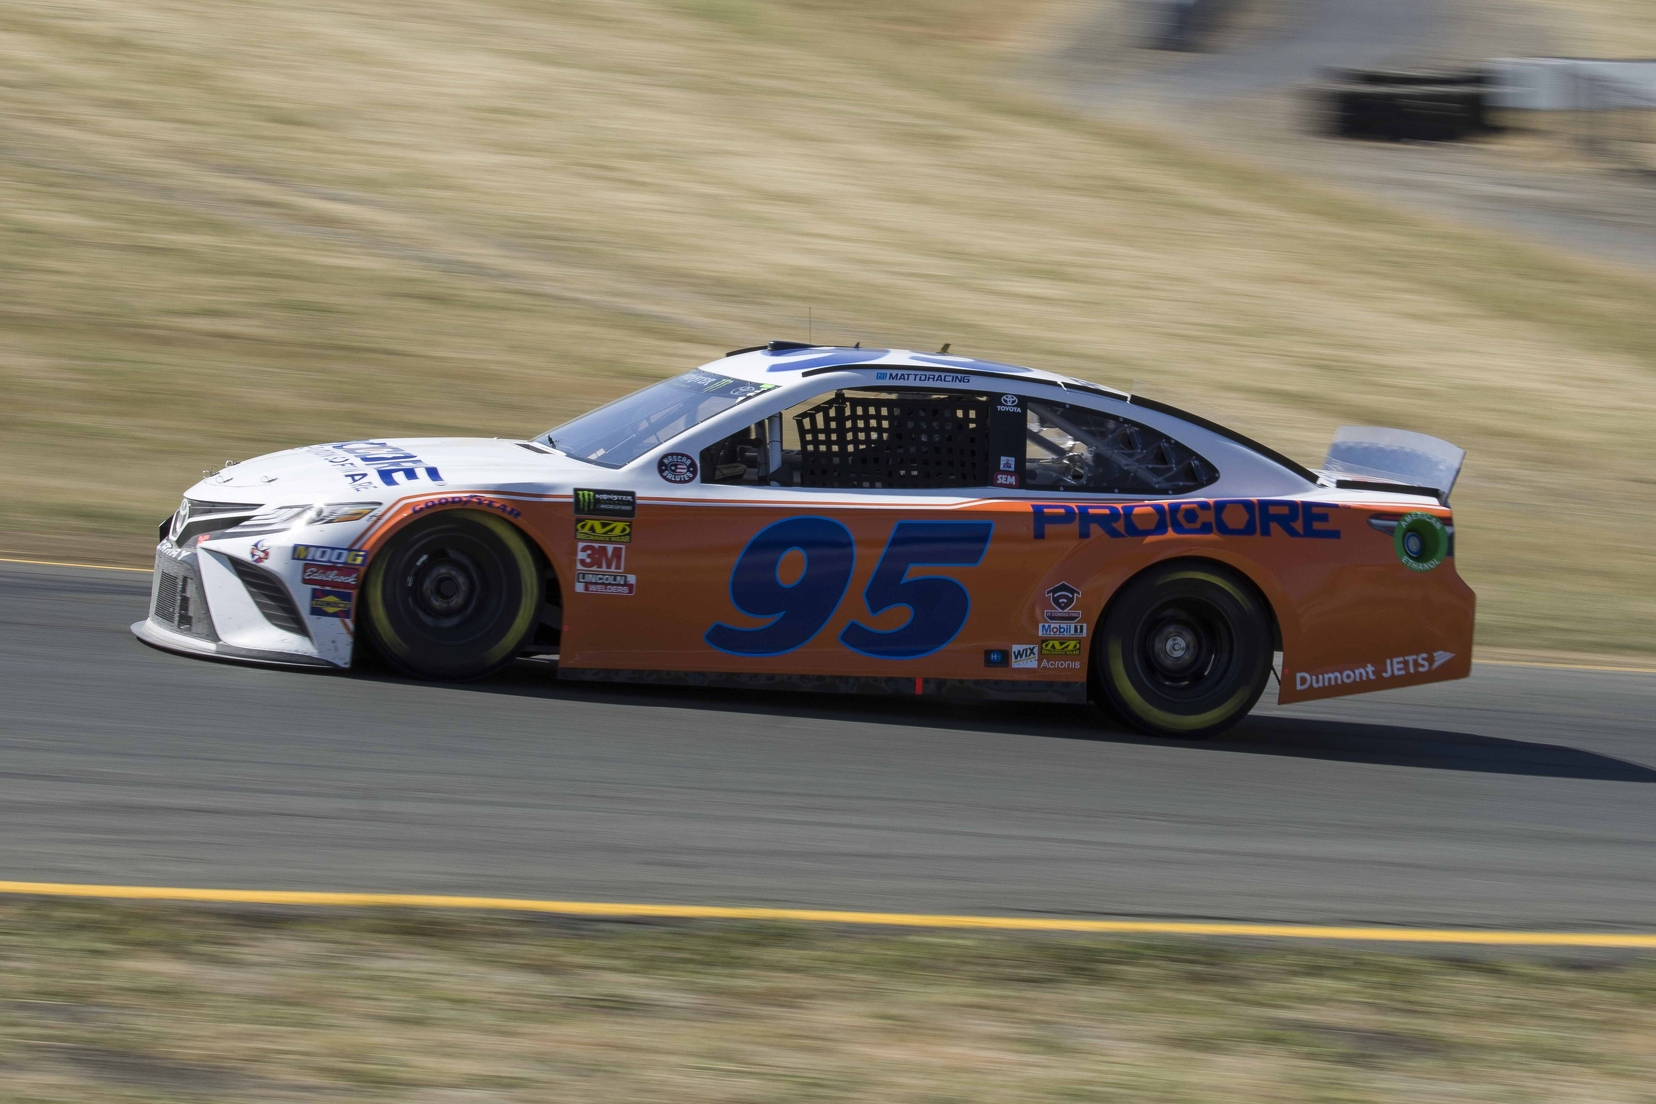 Matt DiBenedetto wheeled his No. 95 Procore Toyota for Levine Family Racing during one of Friday's practice sessions at the technical road course. Photo courtesy of Patrick Sue-Chan for Speedway Media.